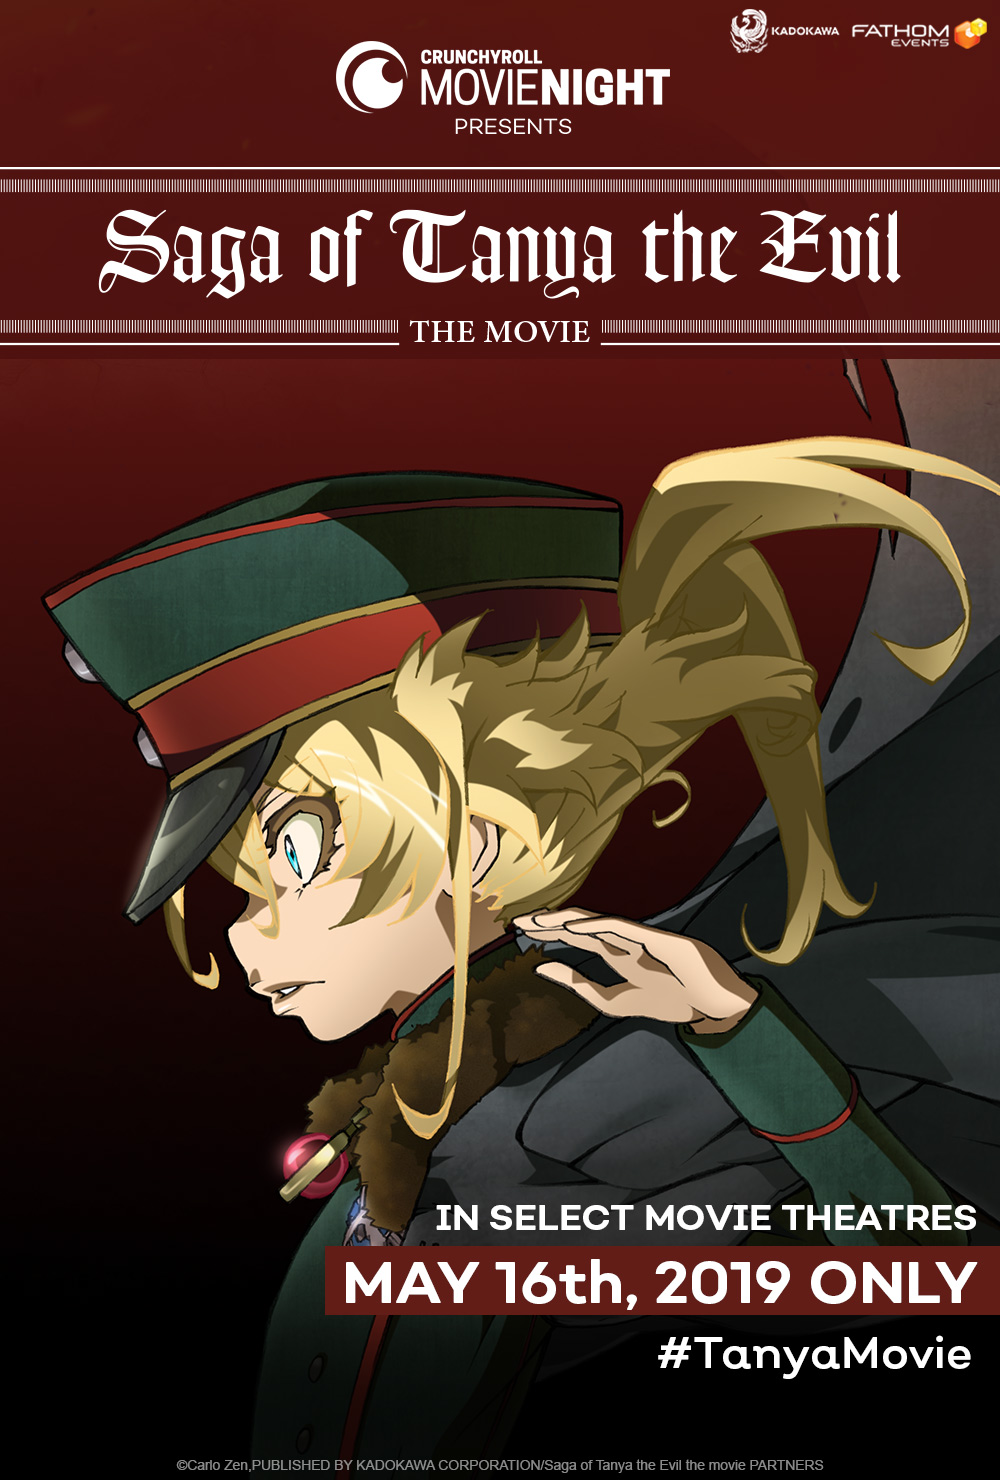 Saga of Tanya the Evil' Is the Next Crunchyroll Movie Night